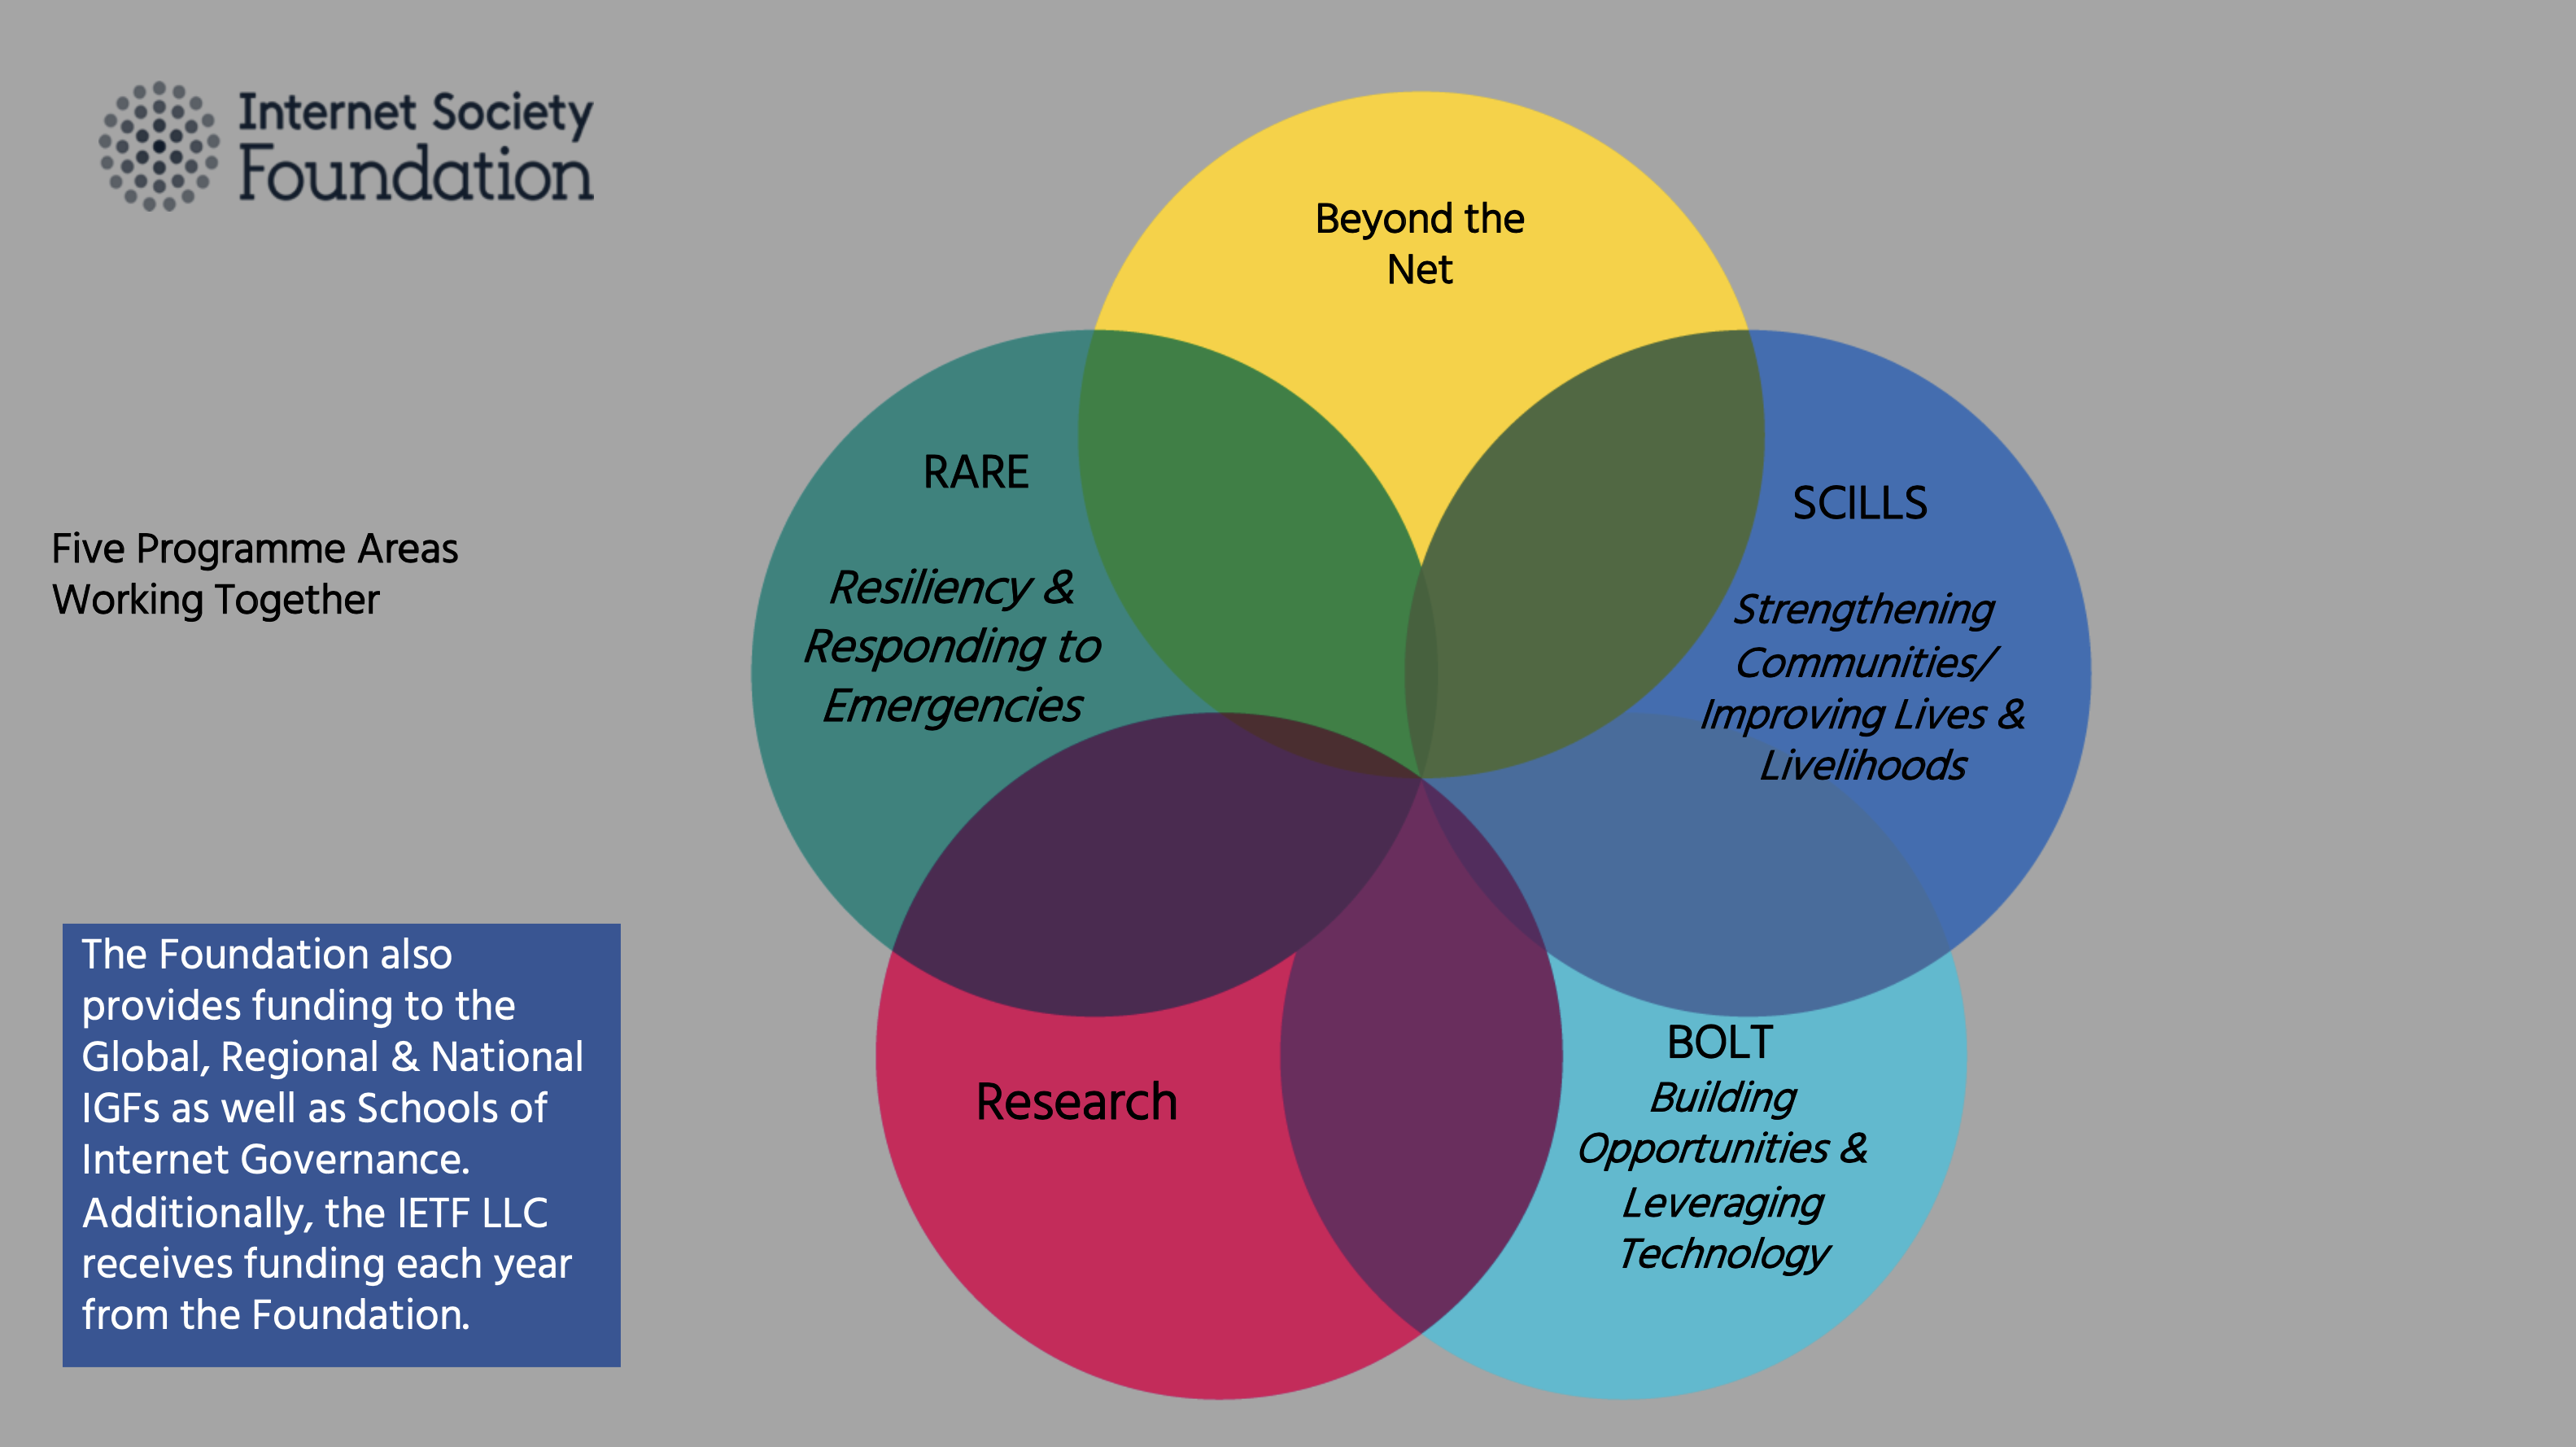 The Internet Society Foundation's five areas working together